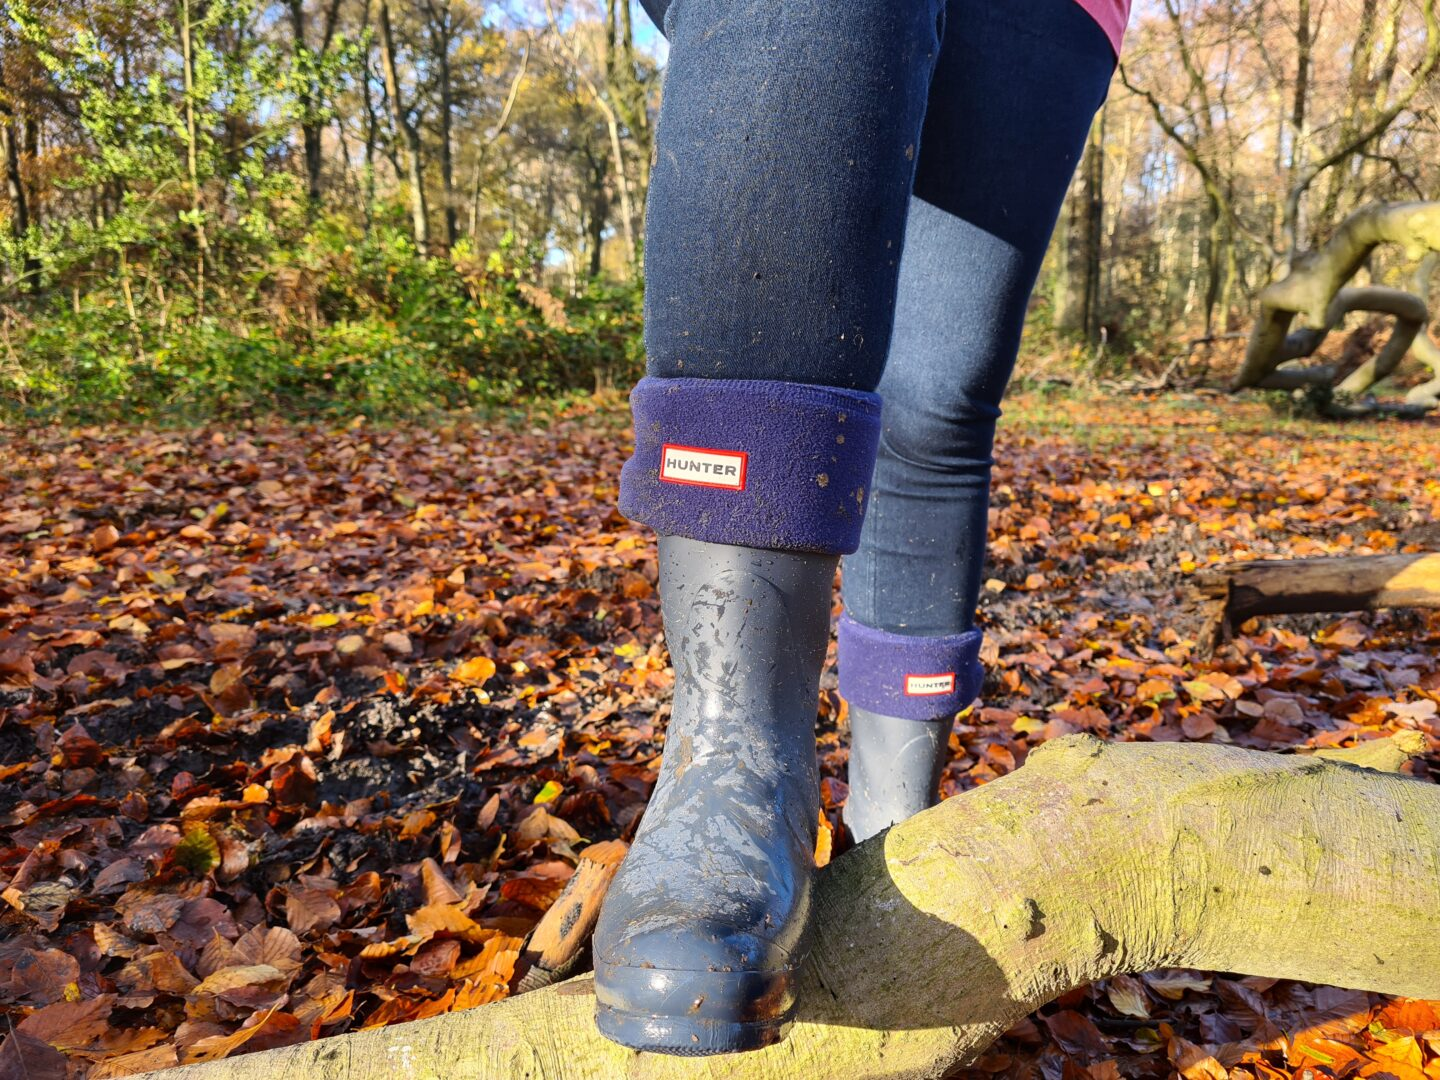 Close up of legs wearing blue Hunter wellies standing in the woods